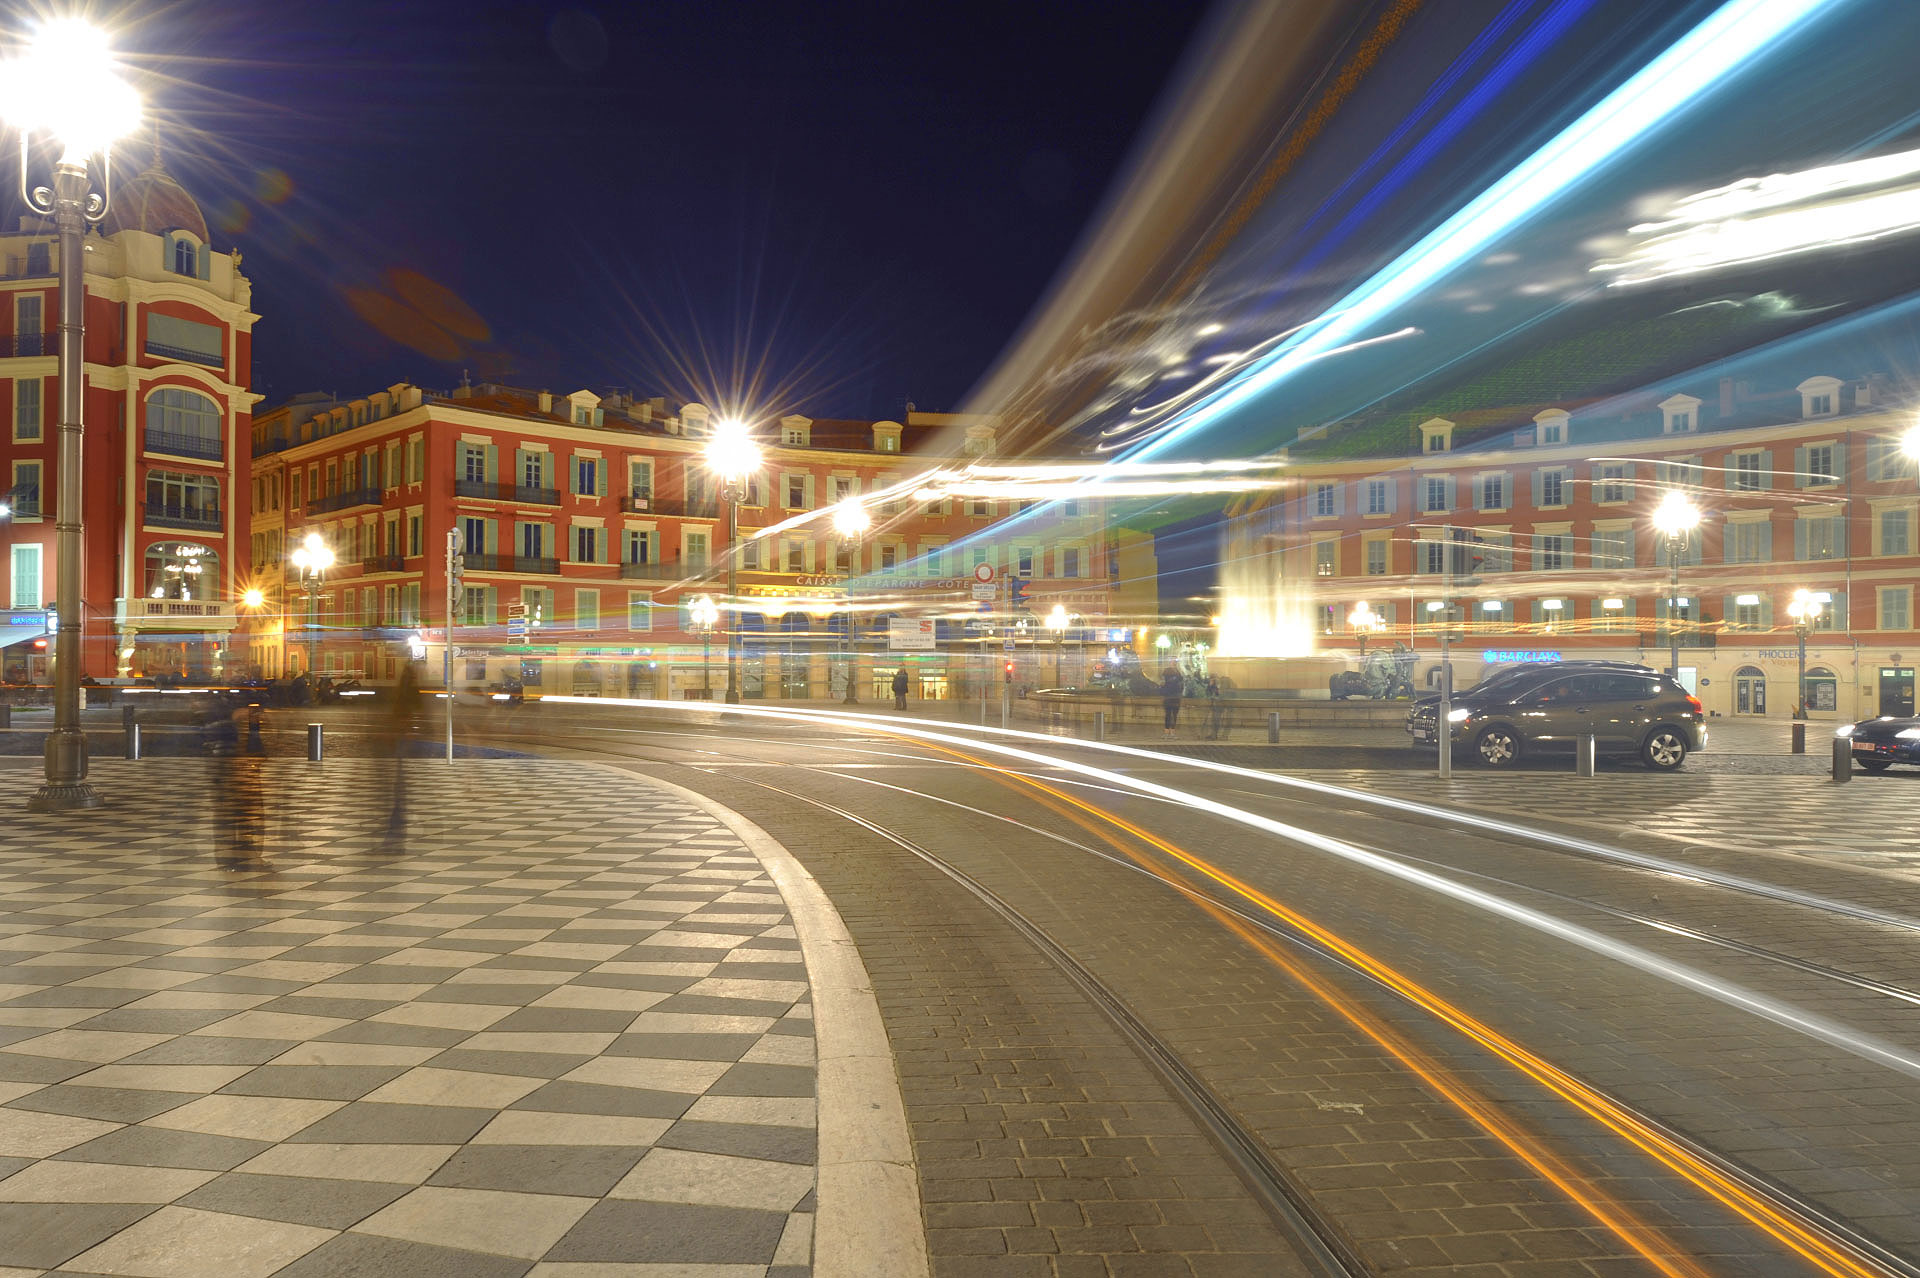 Place Masséna, Nice, Tram by night. Photo Gérard Perez